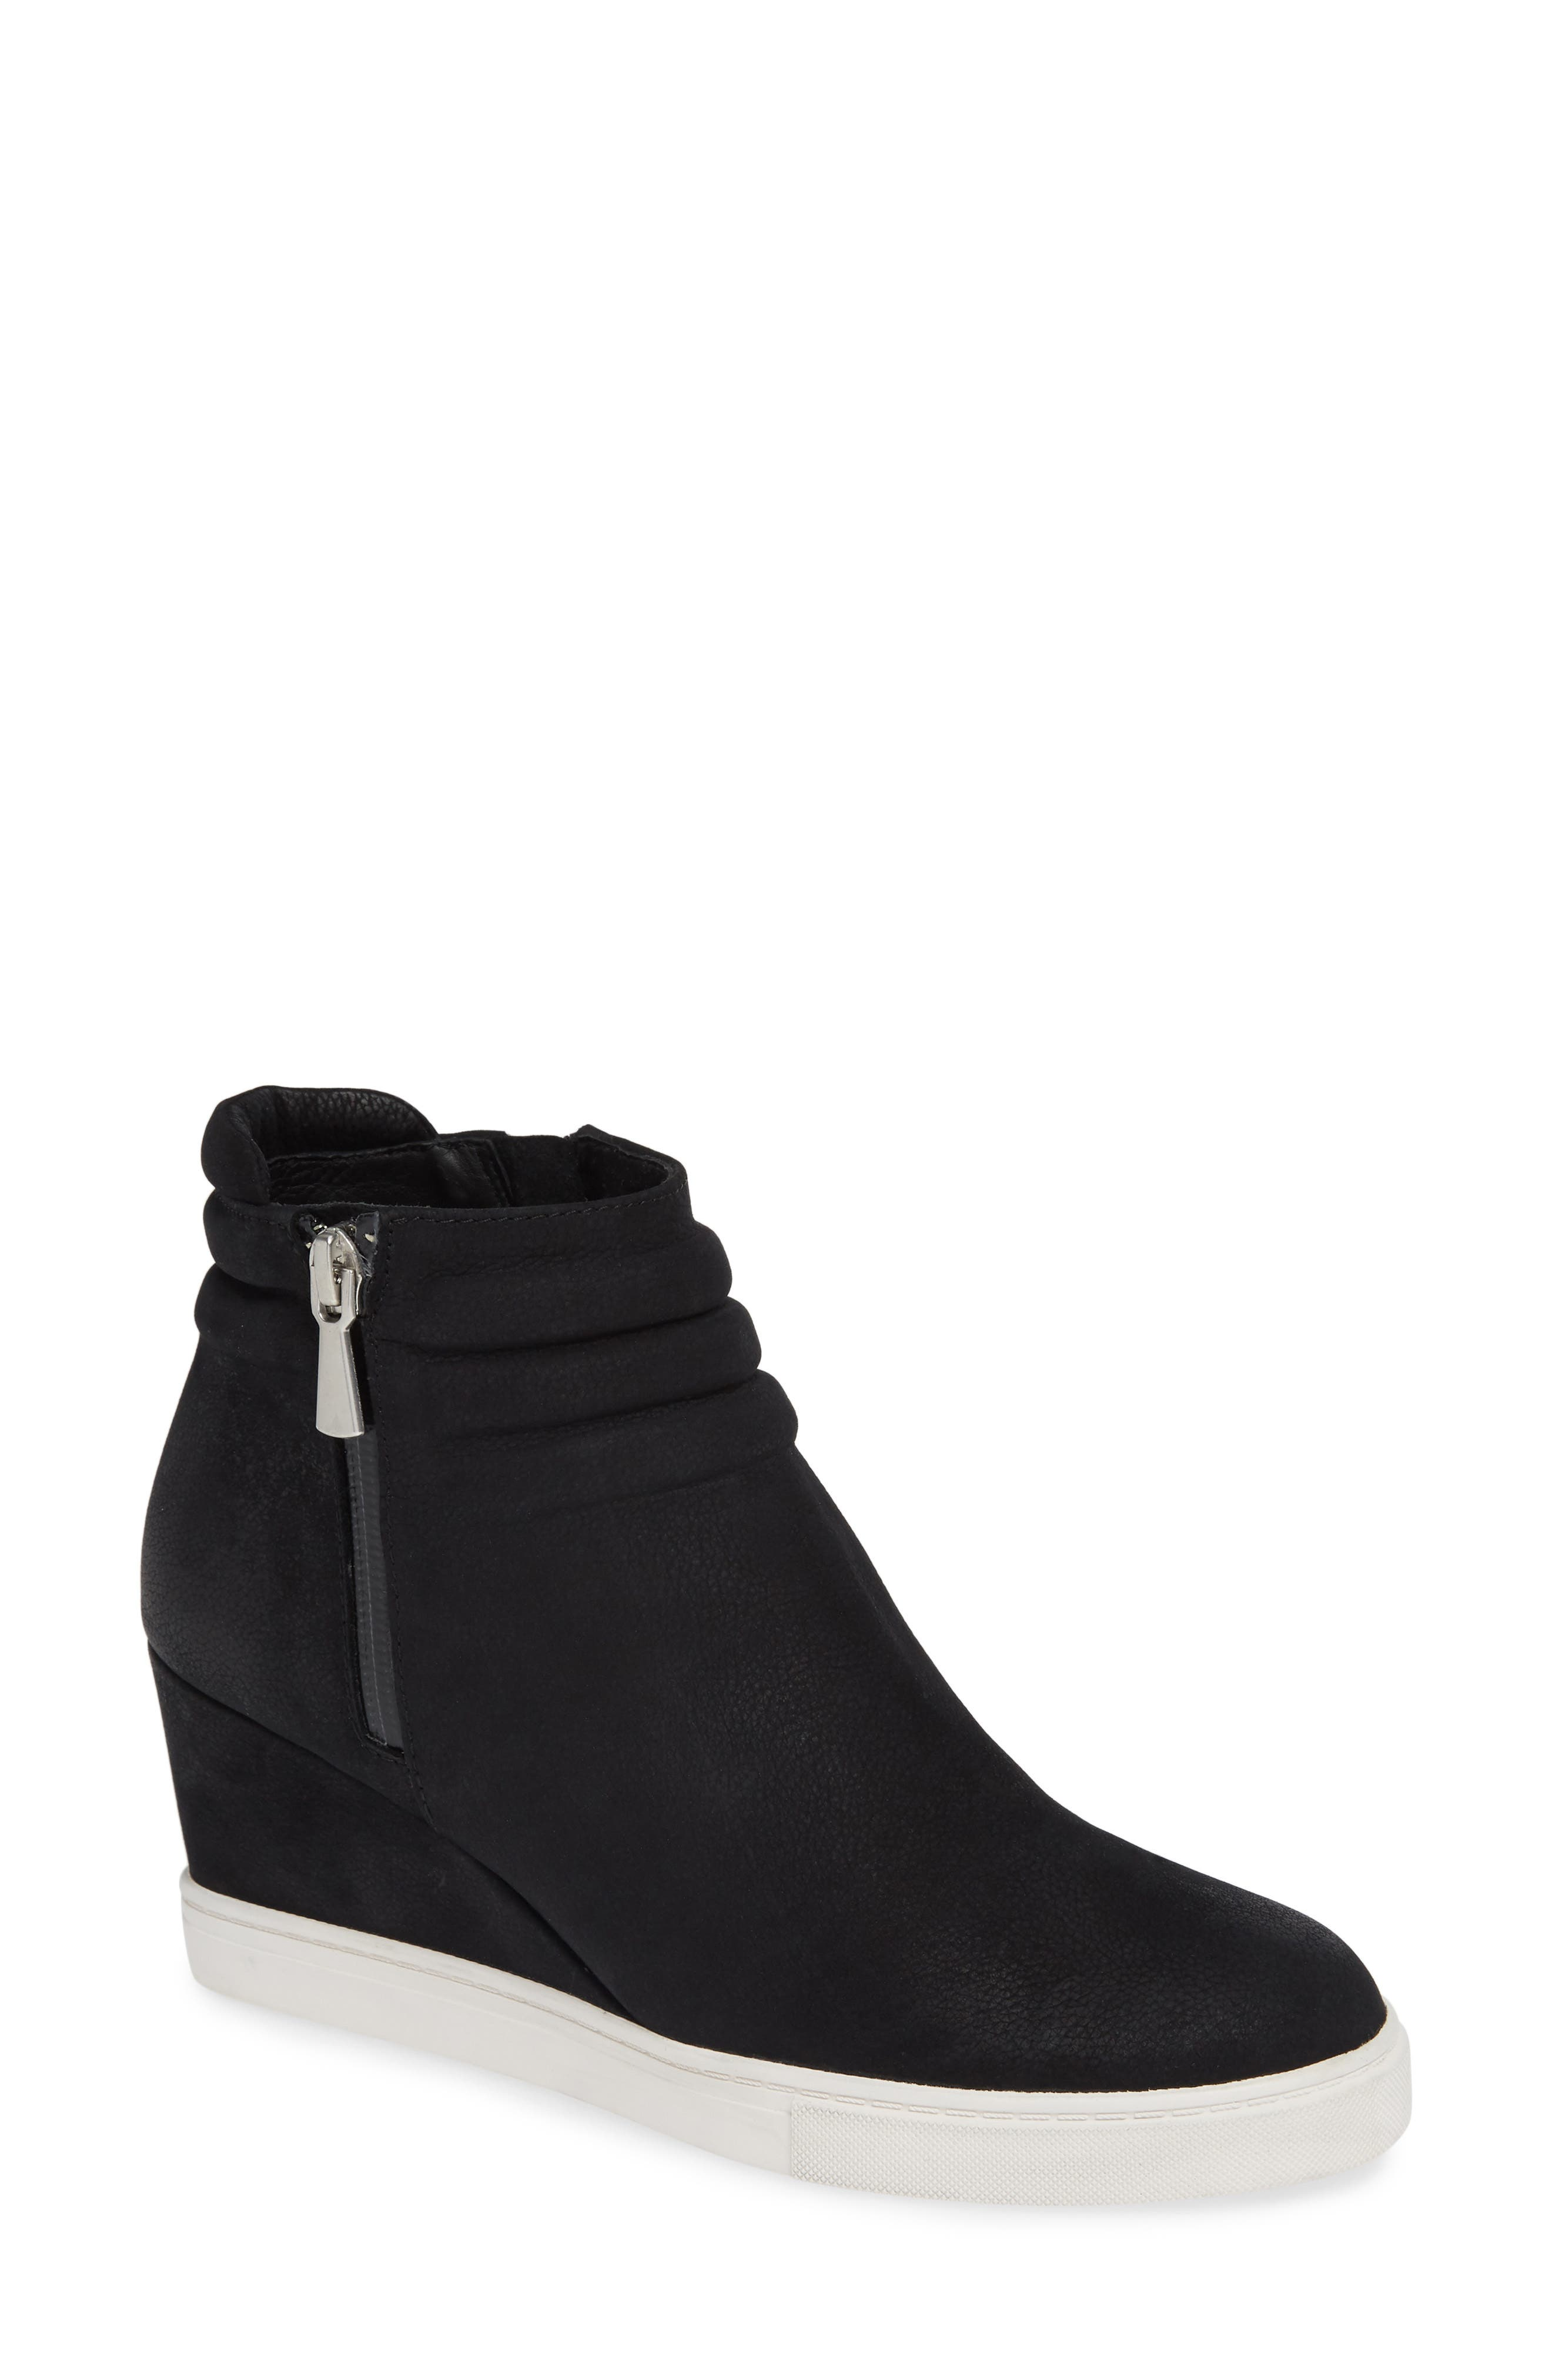 LINEA PAOLO, Flo Waterproof Wedge Bootie, Main thumbnail 1, color, BLACK LEATHER